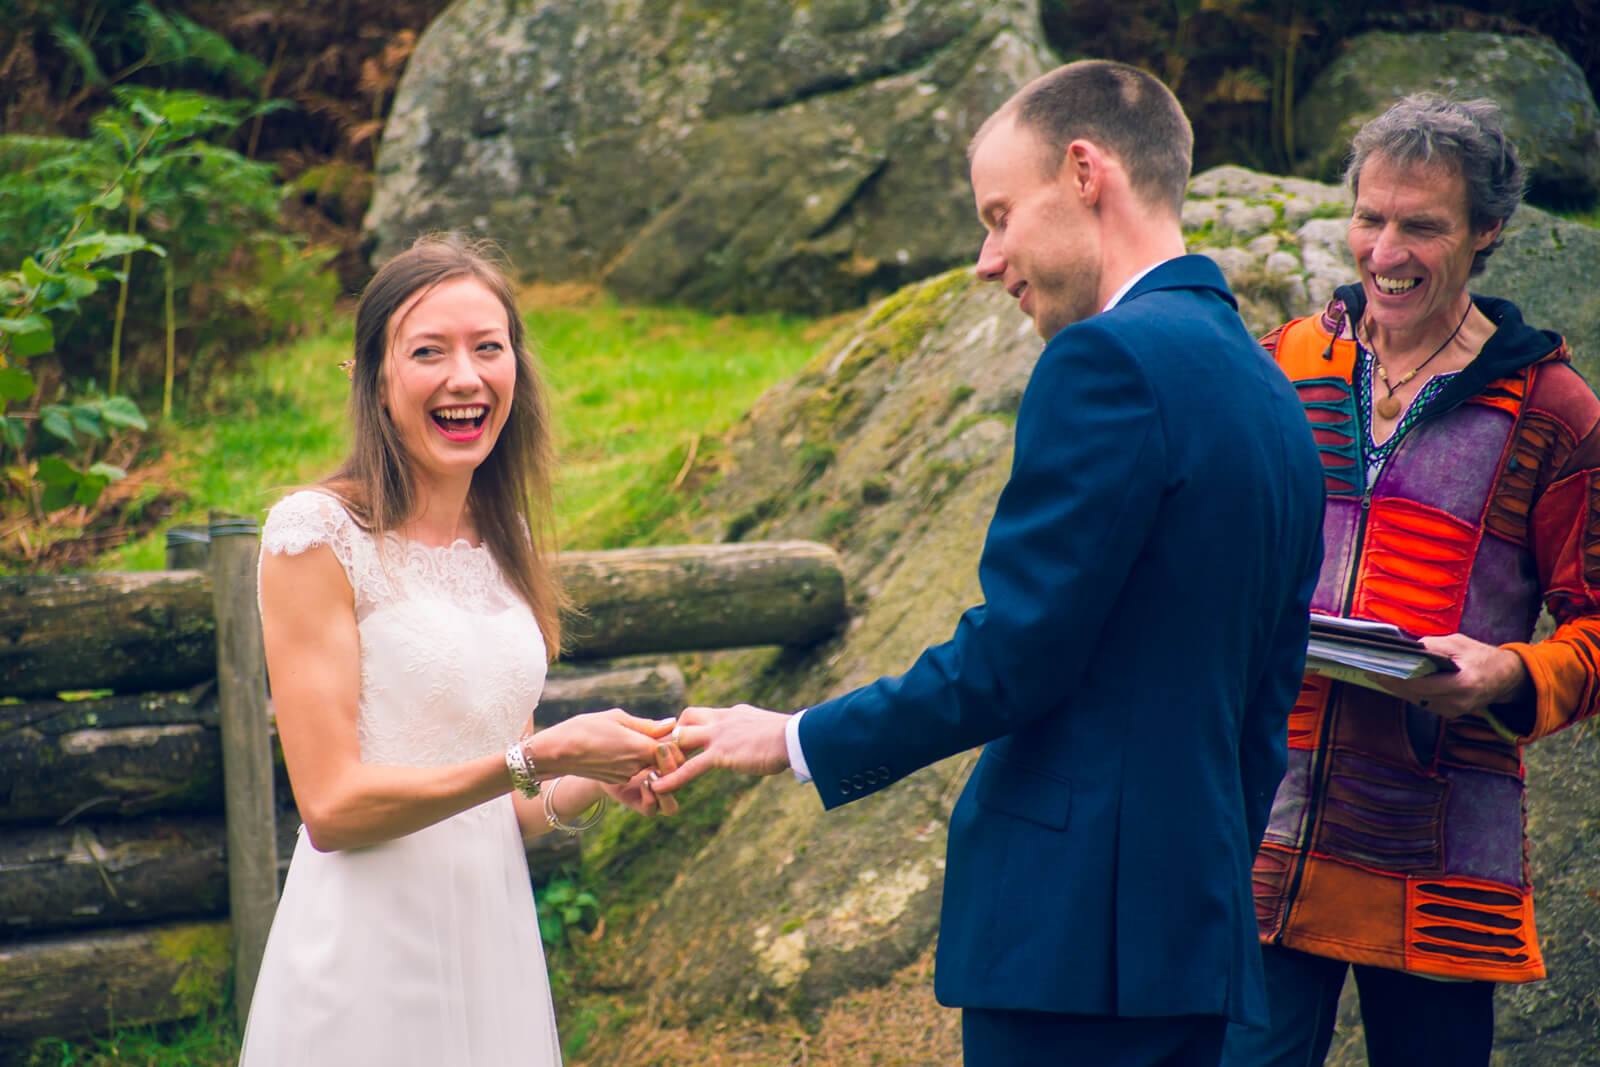 Bride laughs trying to fit the wedding ring onto the groom's finger